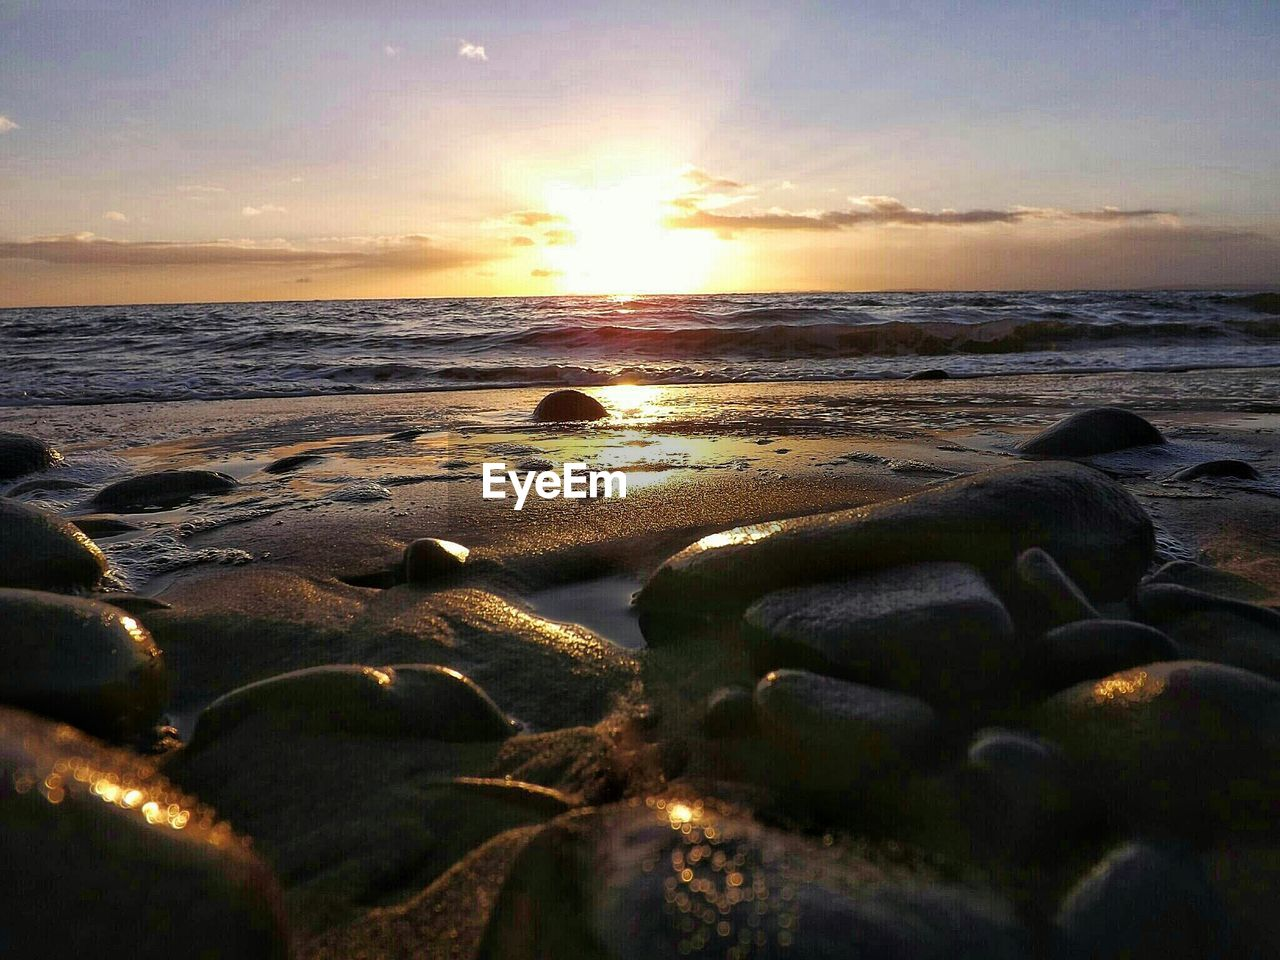 sunset, sea, beach, nature, beauty in nature, water, shore, horizon over water, scenics, tranquil scene, sky, tranquility, sun, no people, outdoors, rock - object, pebble, sand, wave, cloud - sky, pebble beach, day